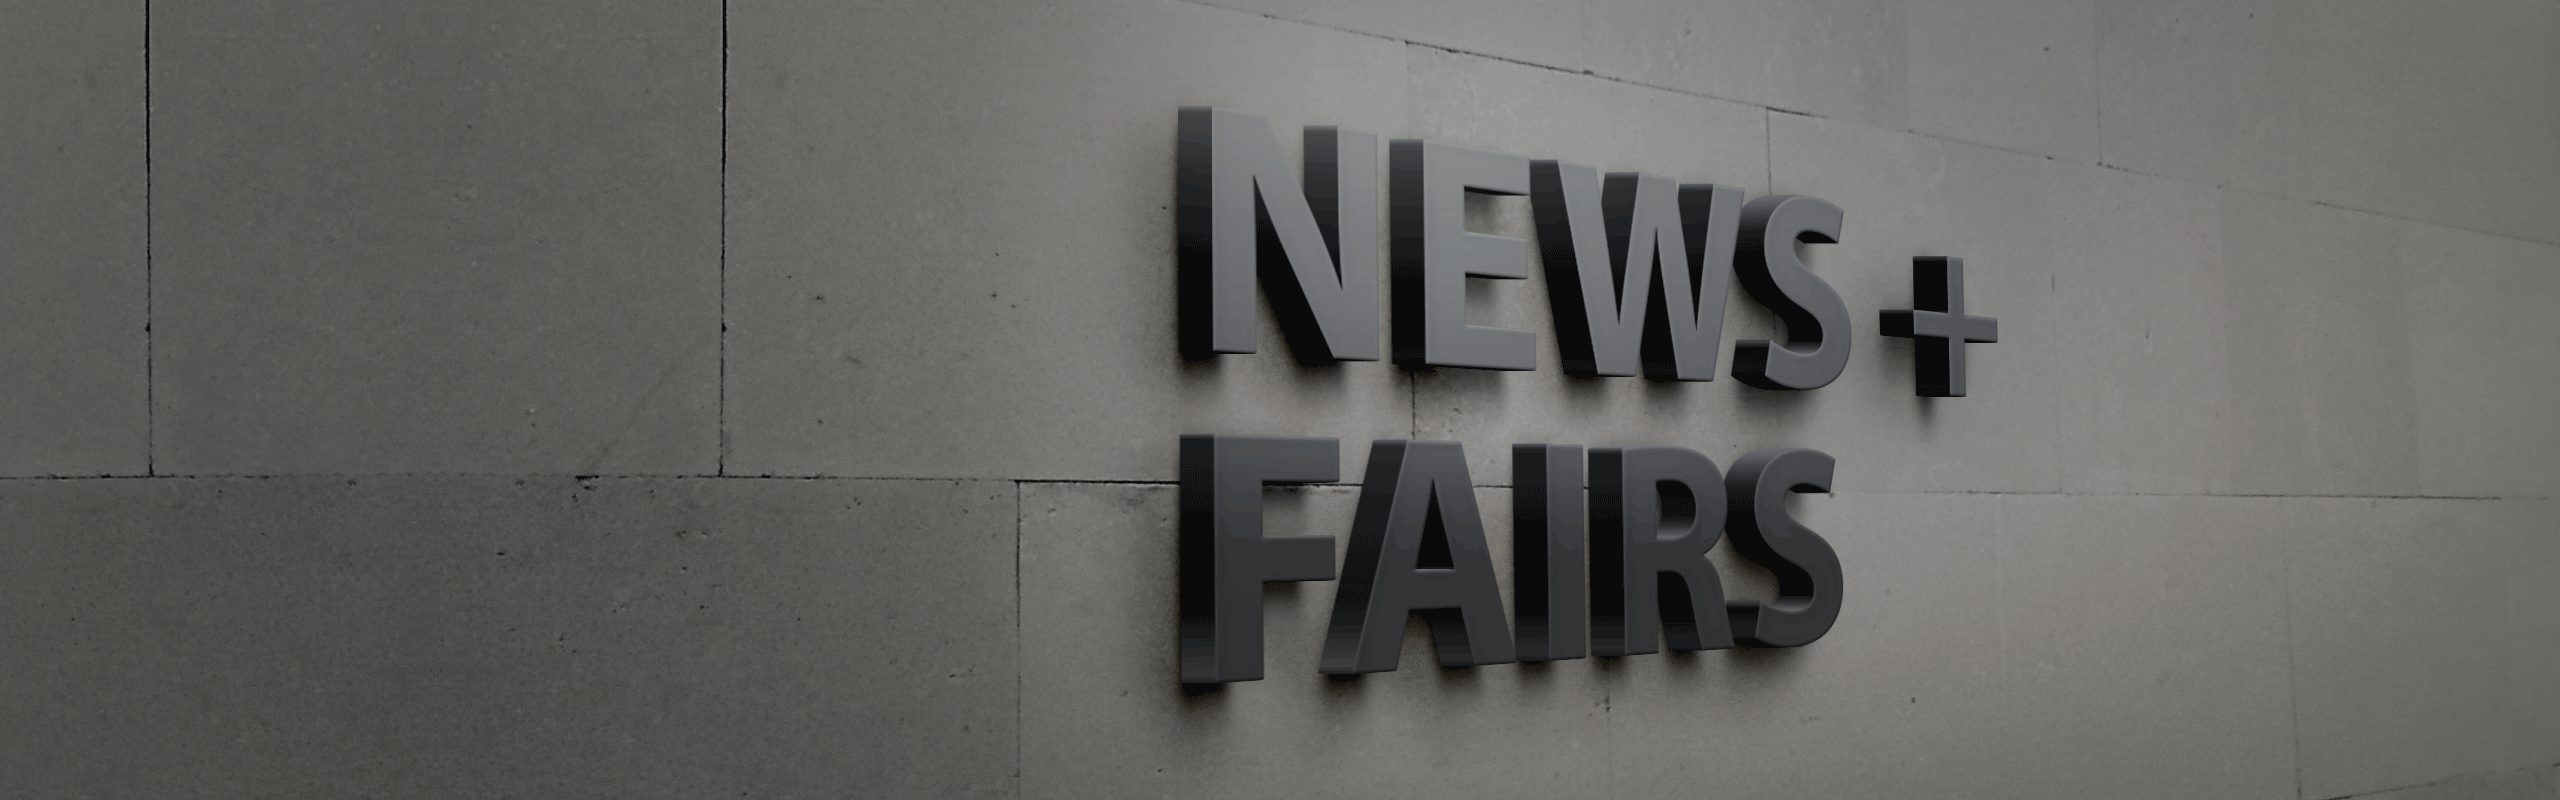 Kyocera Fineceramics Precision News Fairs Header